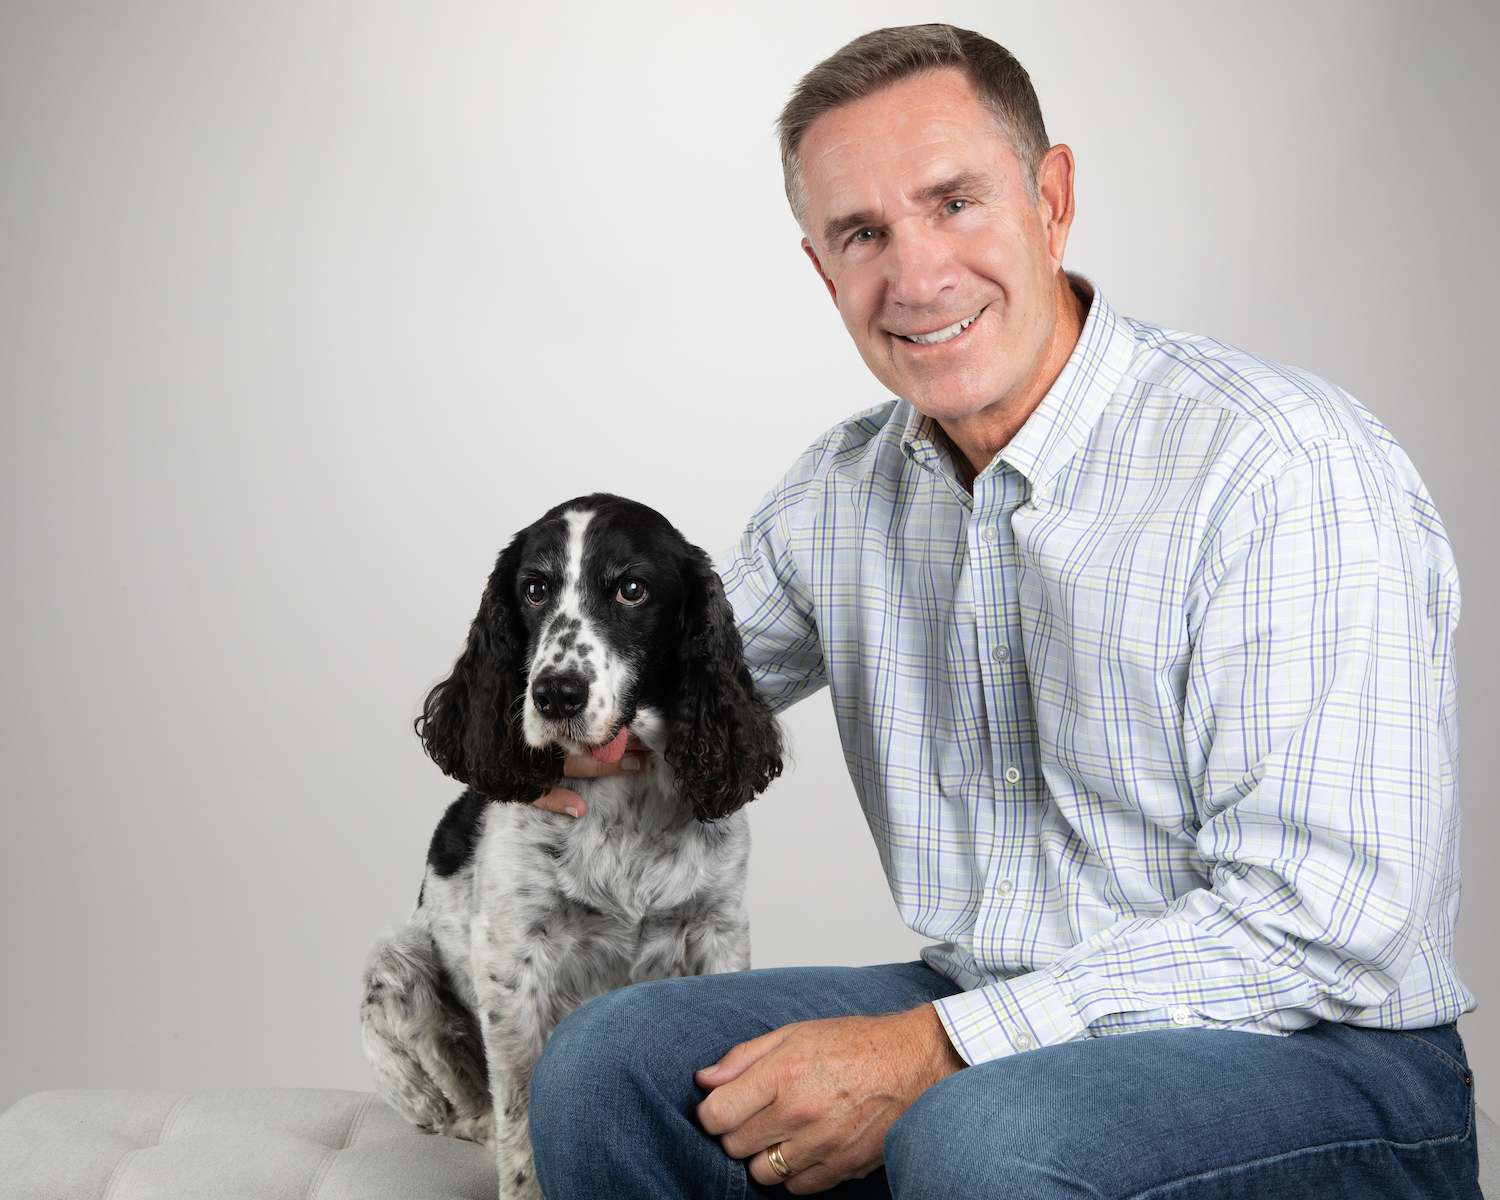 Rob Jackson, co-founder and CEO of Healthy Paws and Barney